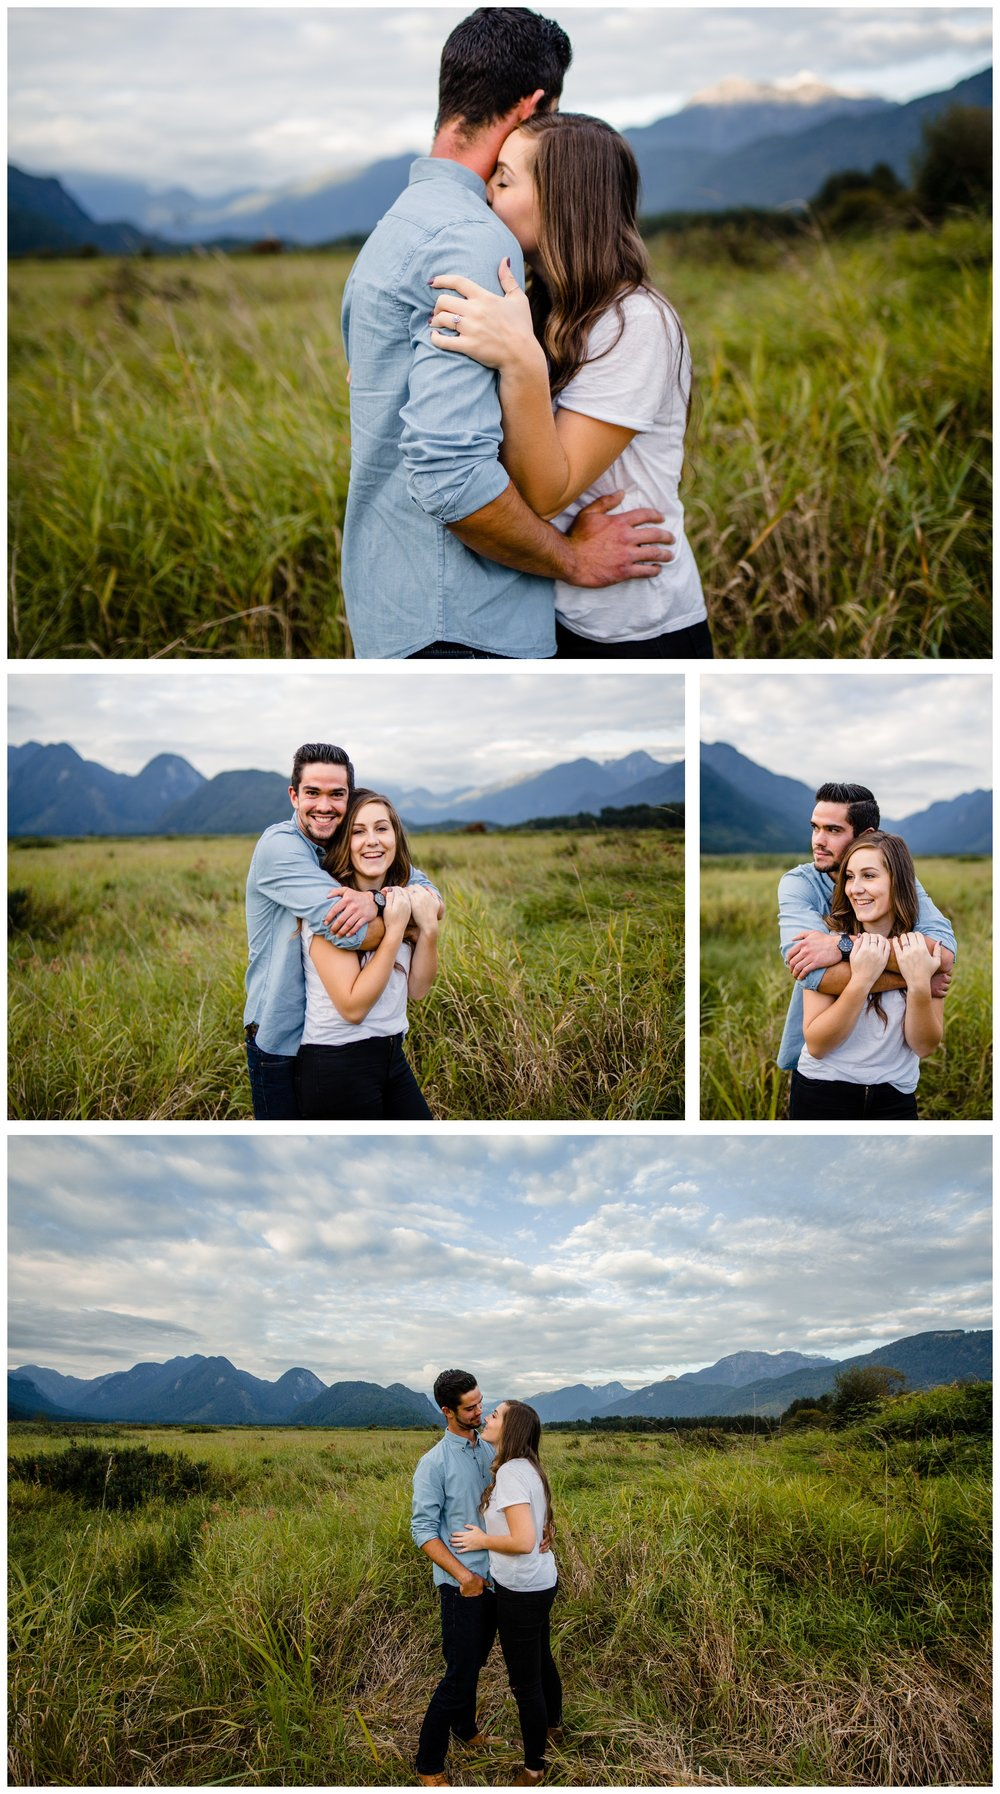 Pitt Lake Pitt Meadows Engagement Photographer Romantic Couple Mountains Lake Black Jean Sunset Flash Fall Fun Photos_0064.jpg